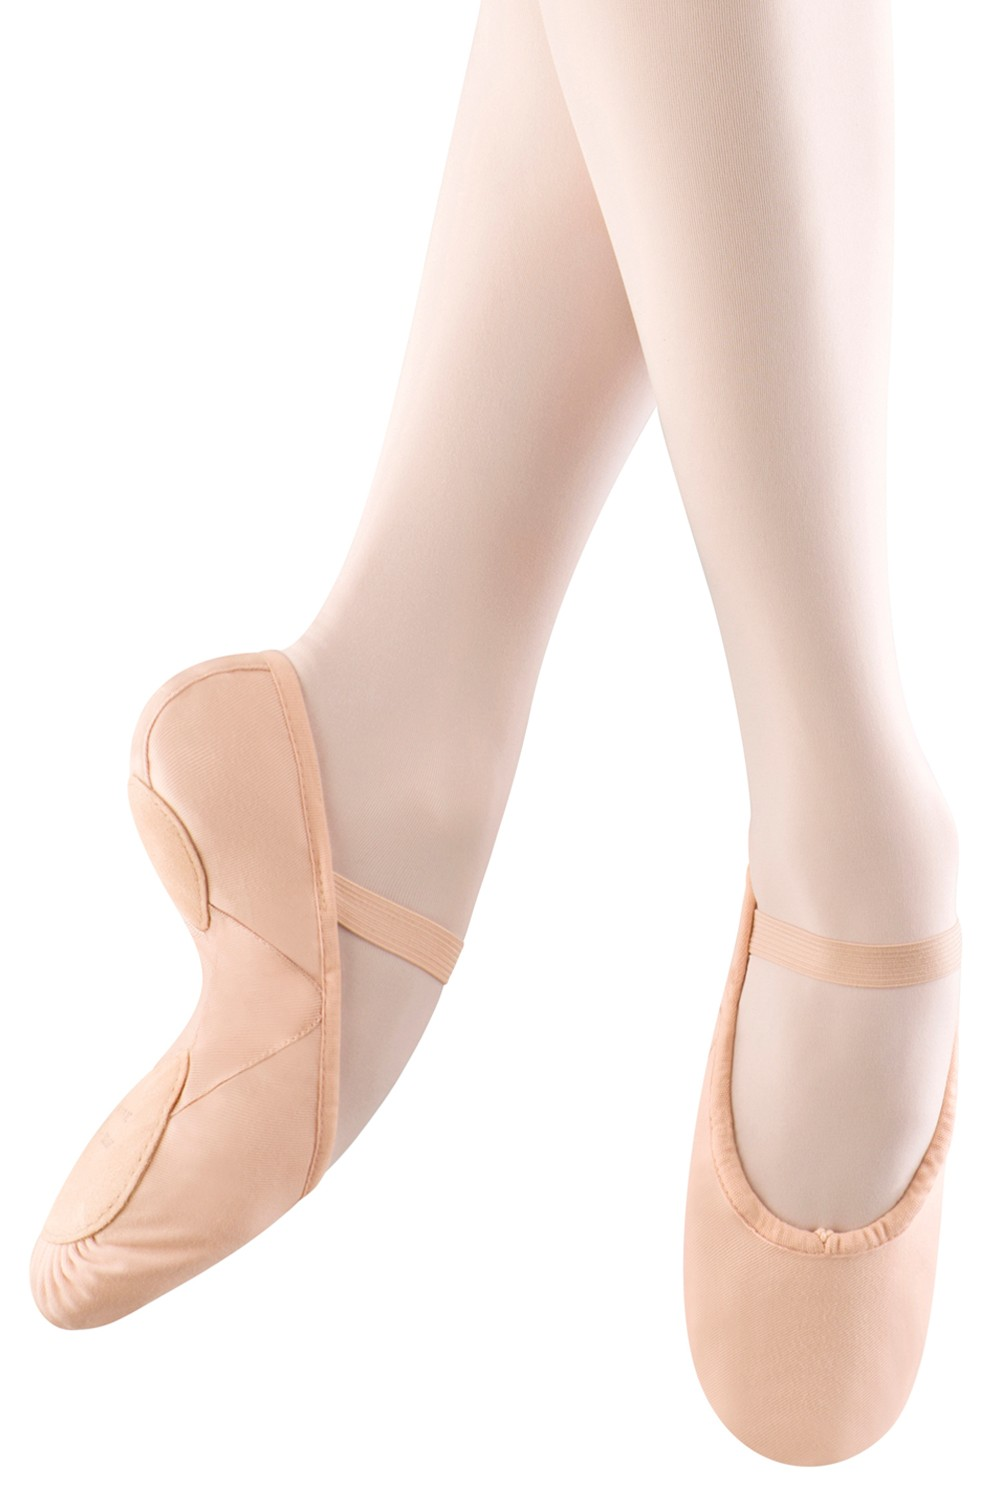 Prolite Ii Canvas Niñas Girl's Ballet Shoes